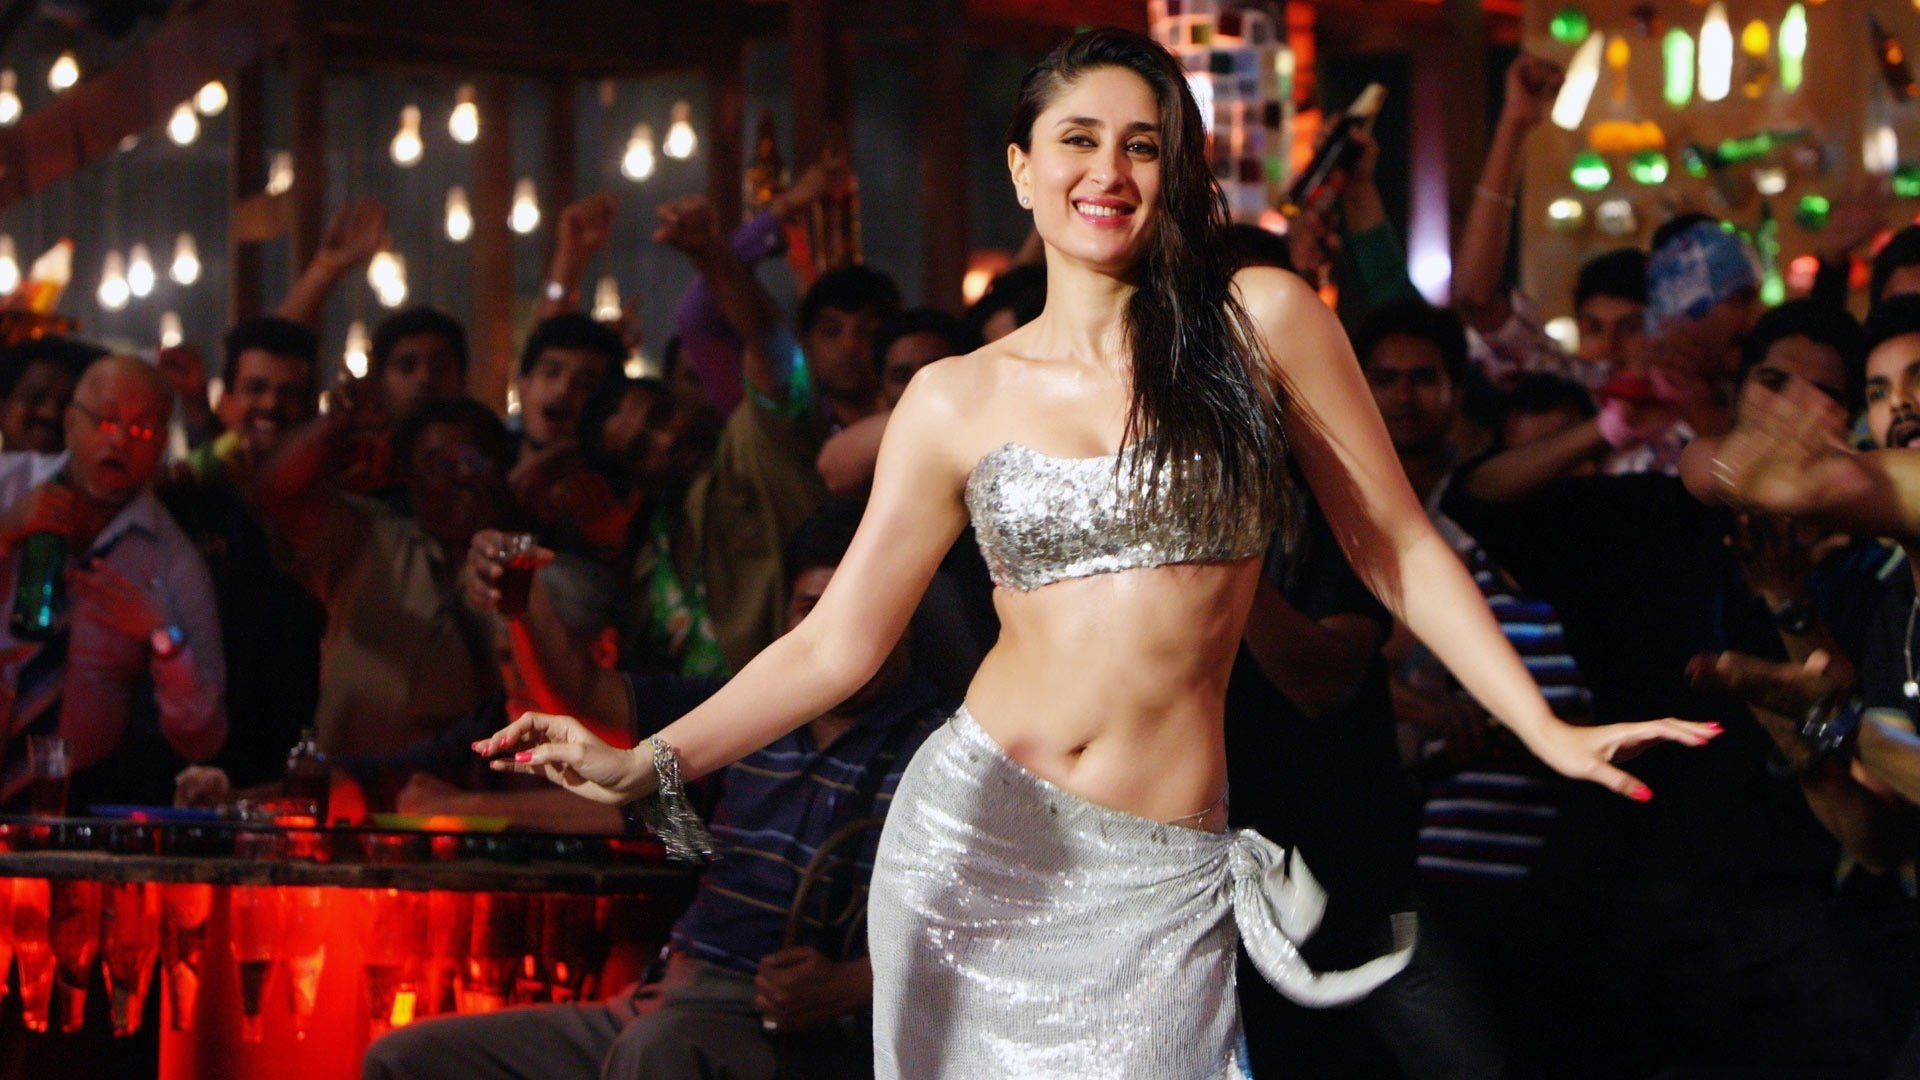 Green is the new sexy kareena kapoor khan looks smouldering hot in this still